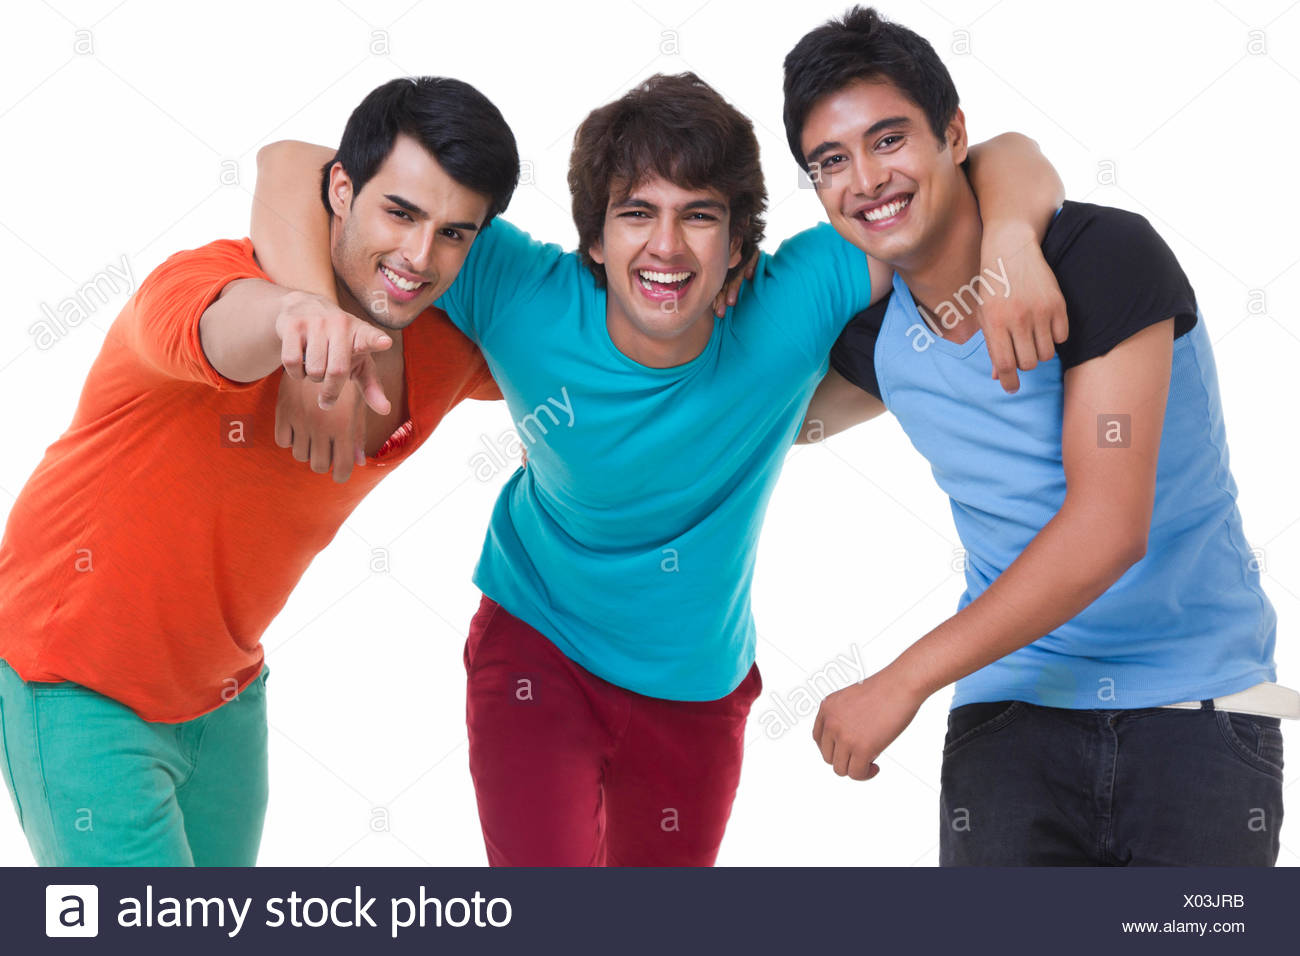 Playful young male friends with arm around over white background - Stock Image